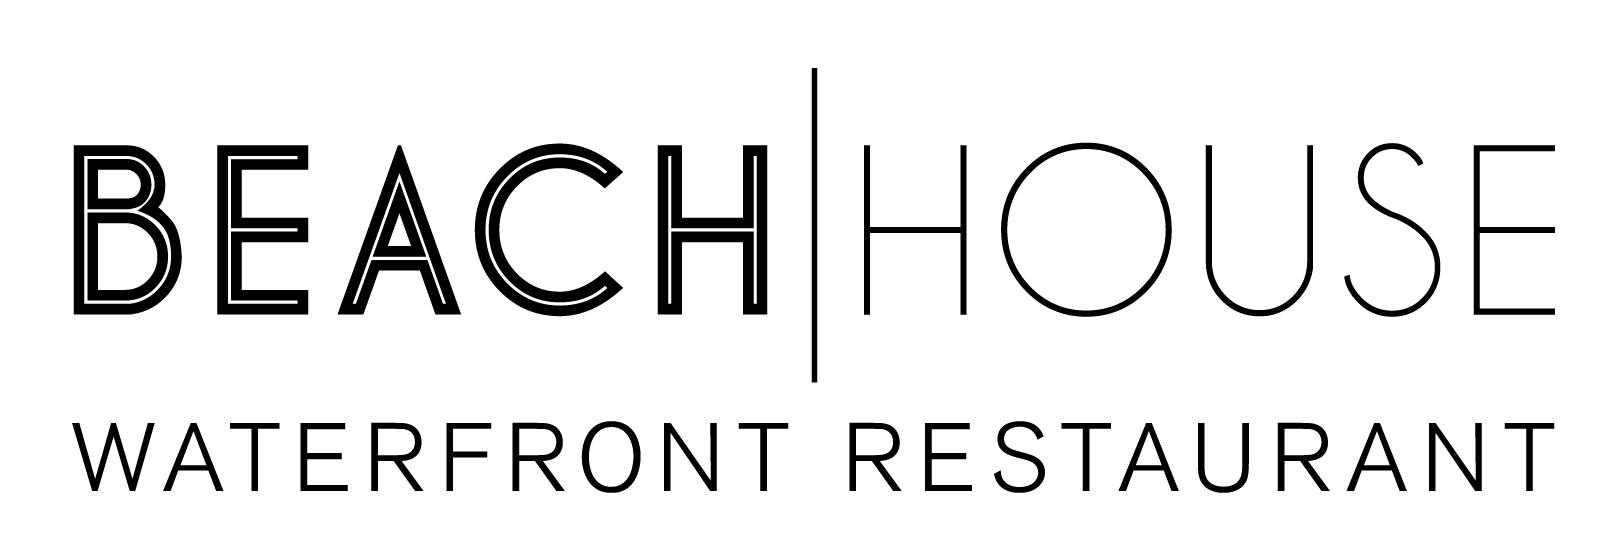 The Beach House Waterfront Resturant's modern and clean logo.